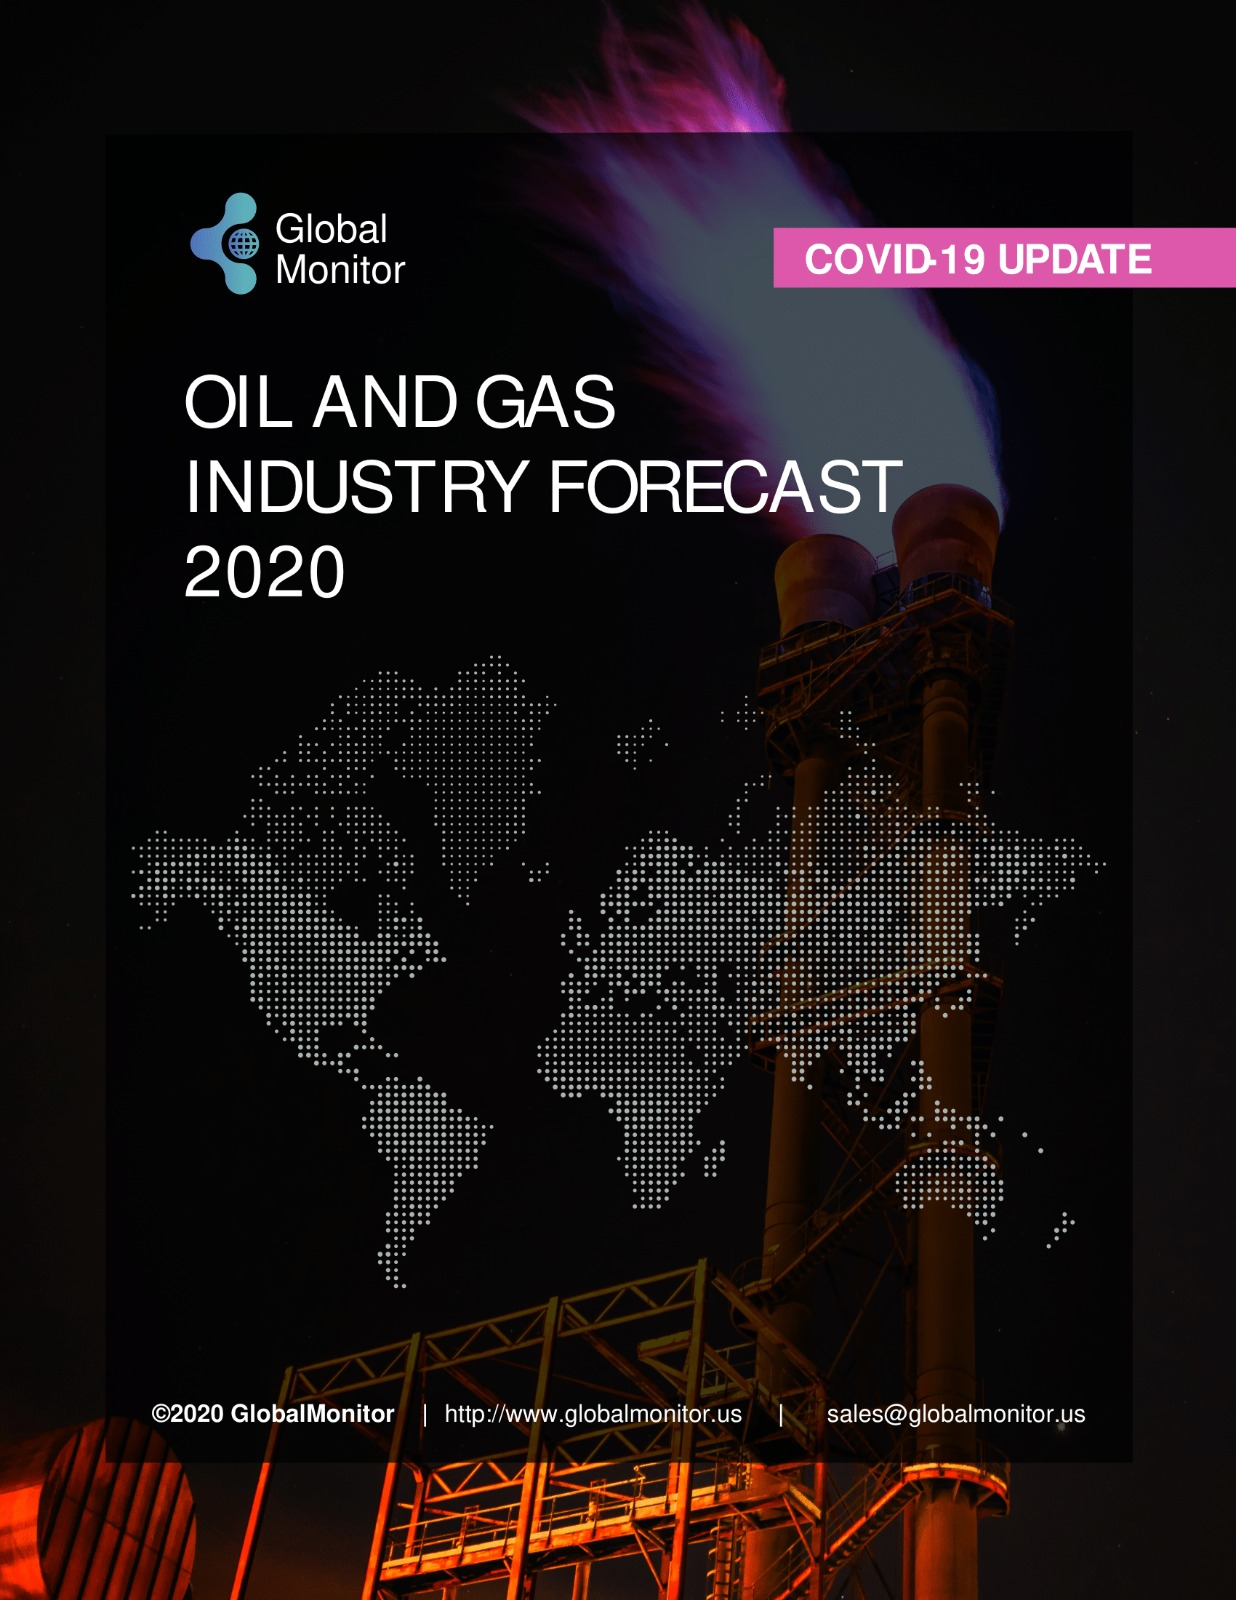 Saudi Arabia Oil and Gas Market Report with COVID-19 impact Analysis  (2020-2025)